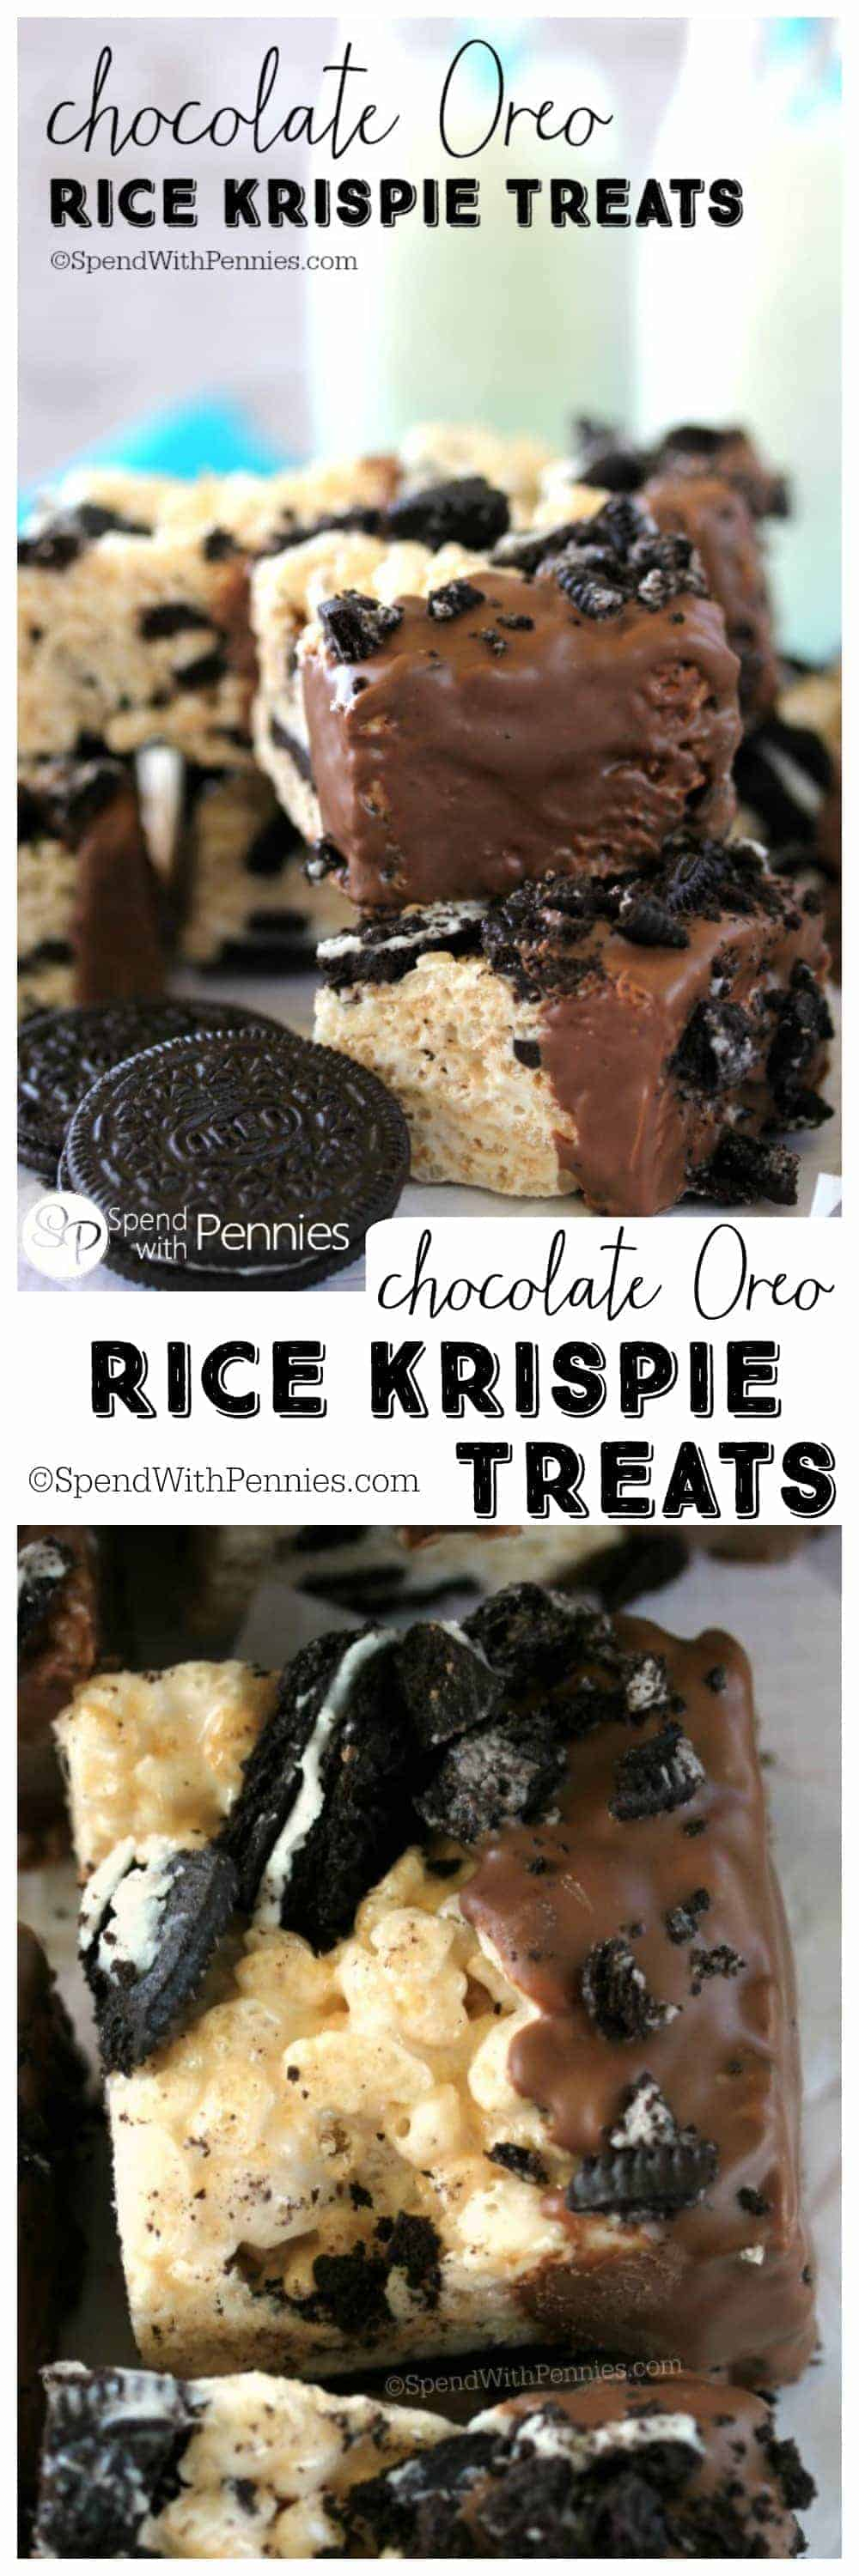 Chocolate Oreo Rice Krispie Treats combine our favorites; Rice Krispie Treats, Oreo Cookies and chocolate all in one easy to make no-bake square!